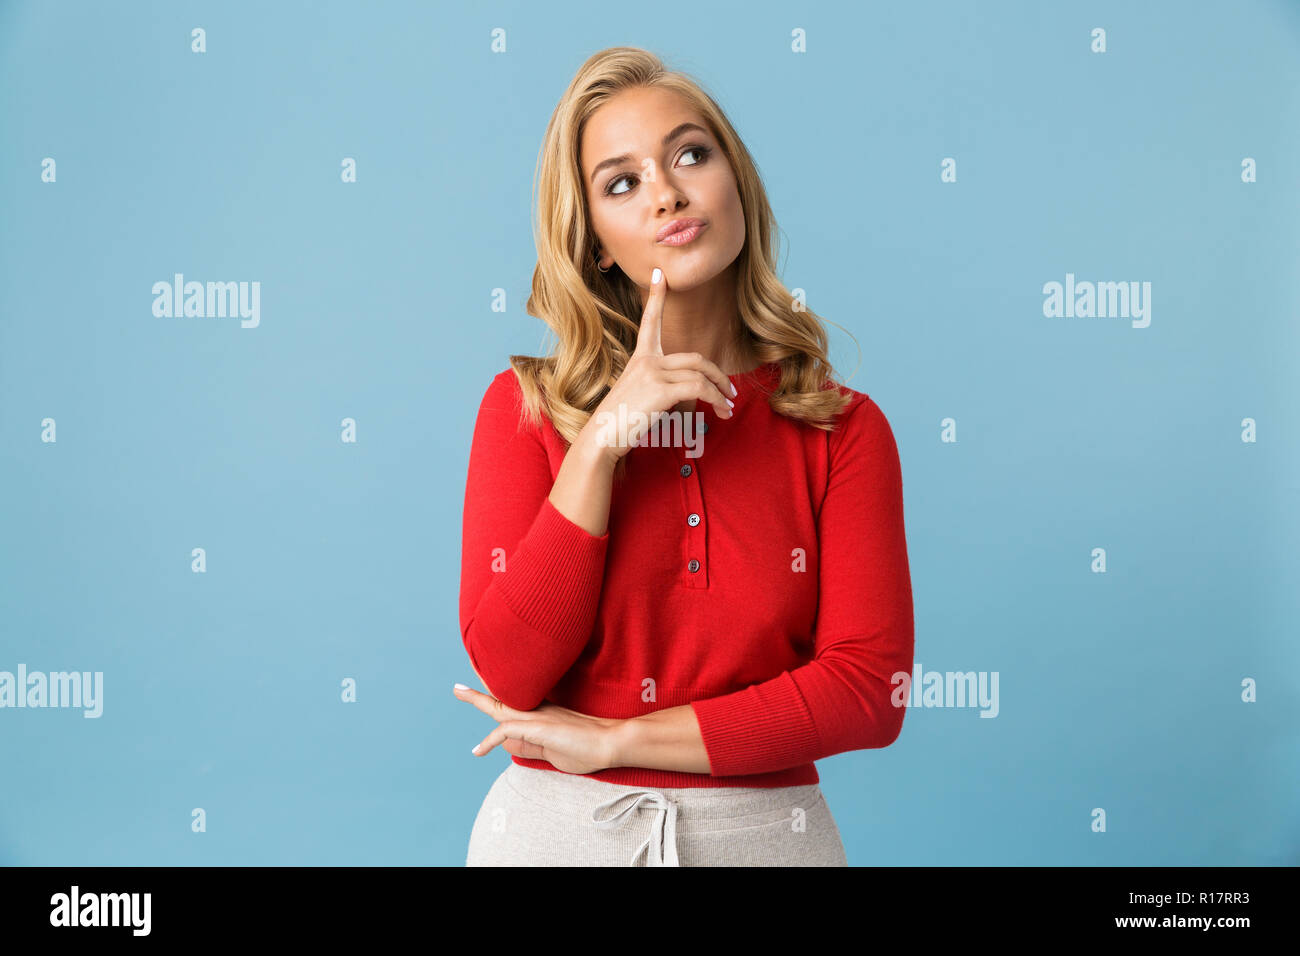 Portrait of affable blond woman 20s wearing red shirt looking aside at copyspace isolated over blue background in studio - Stock Image